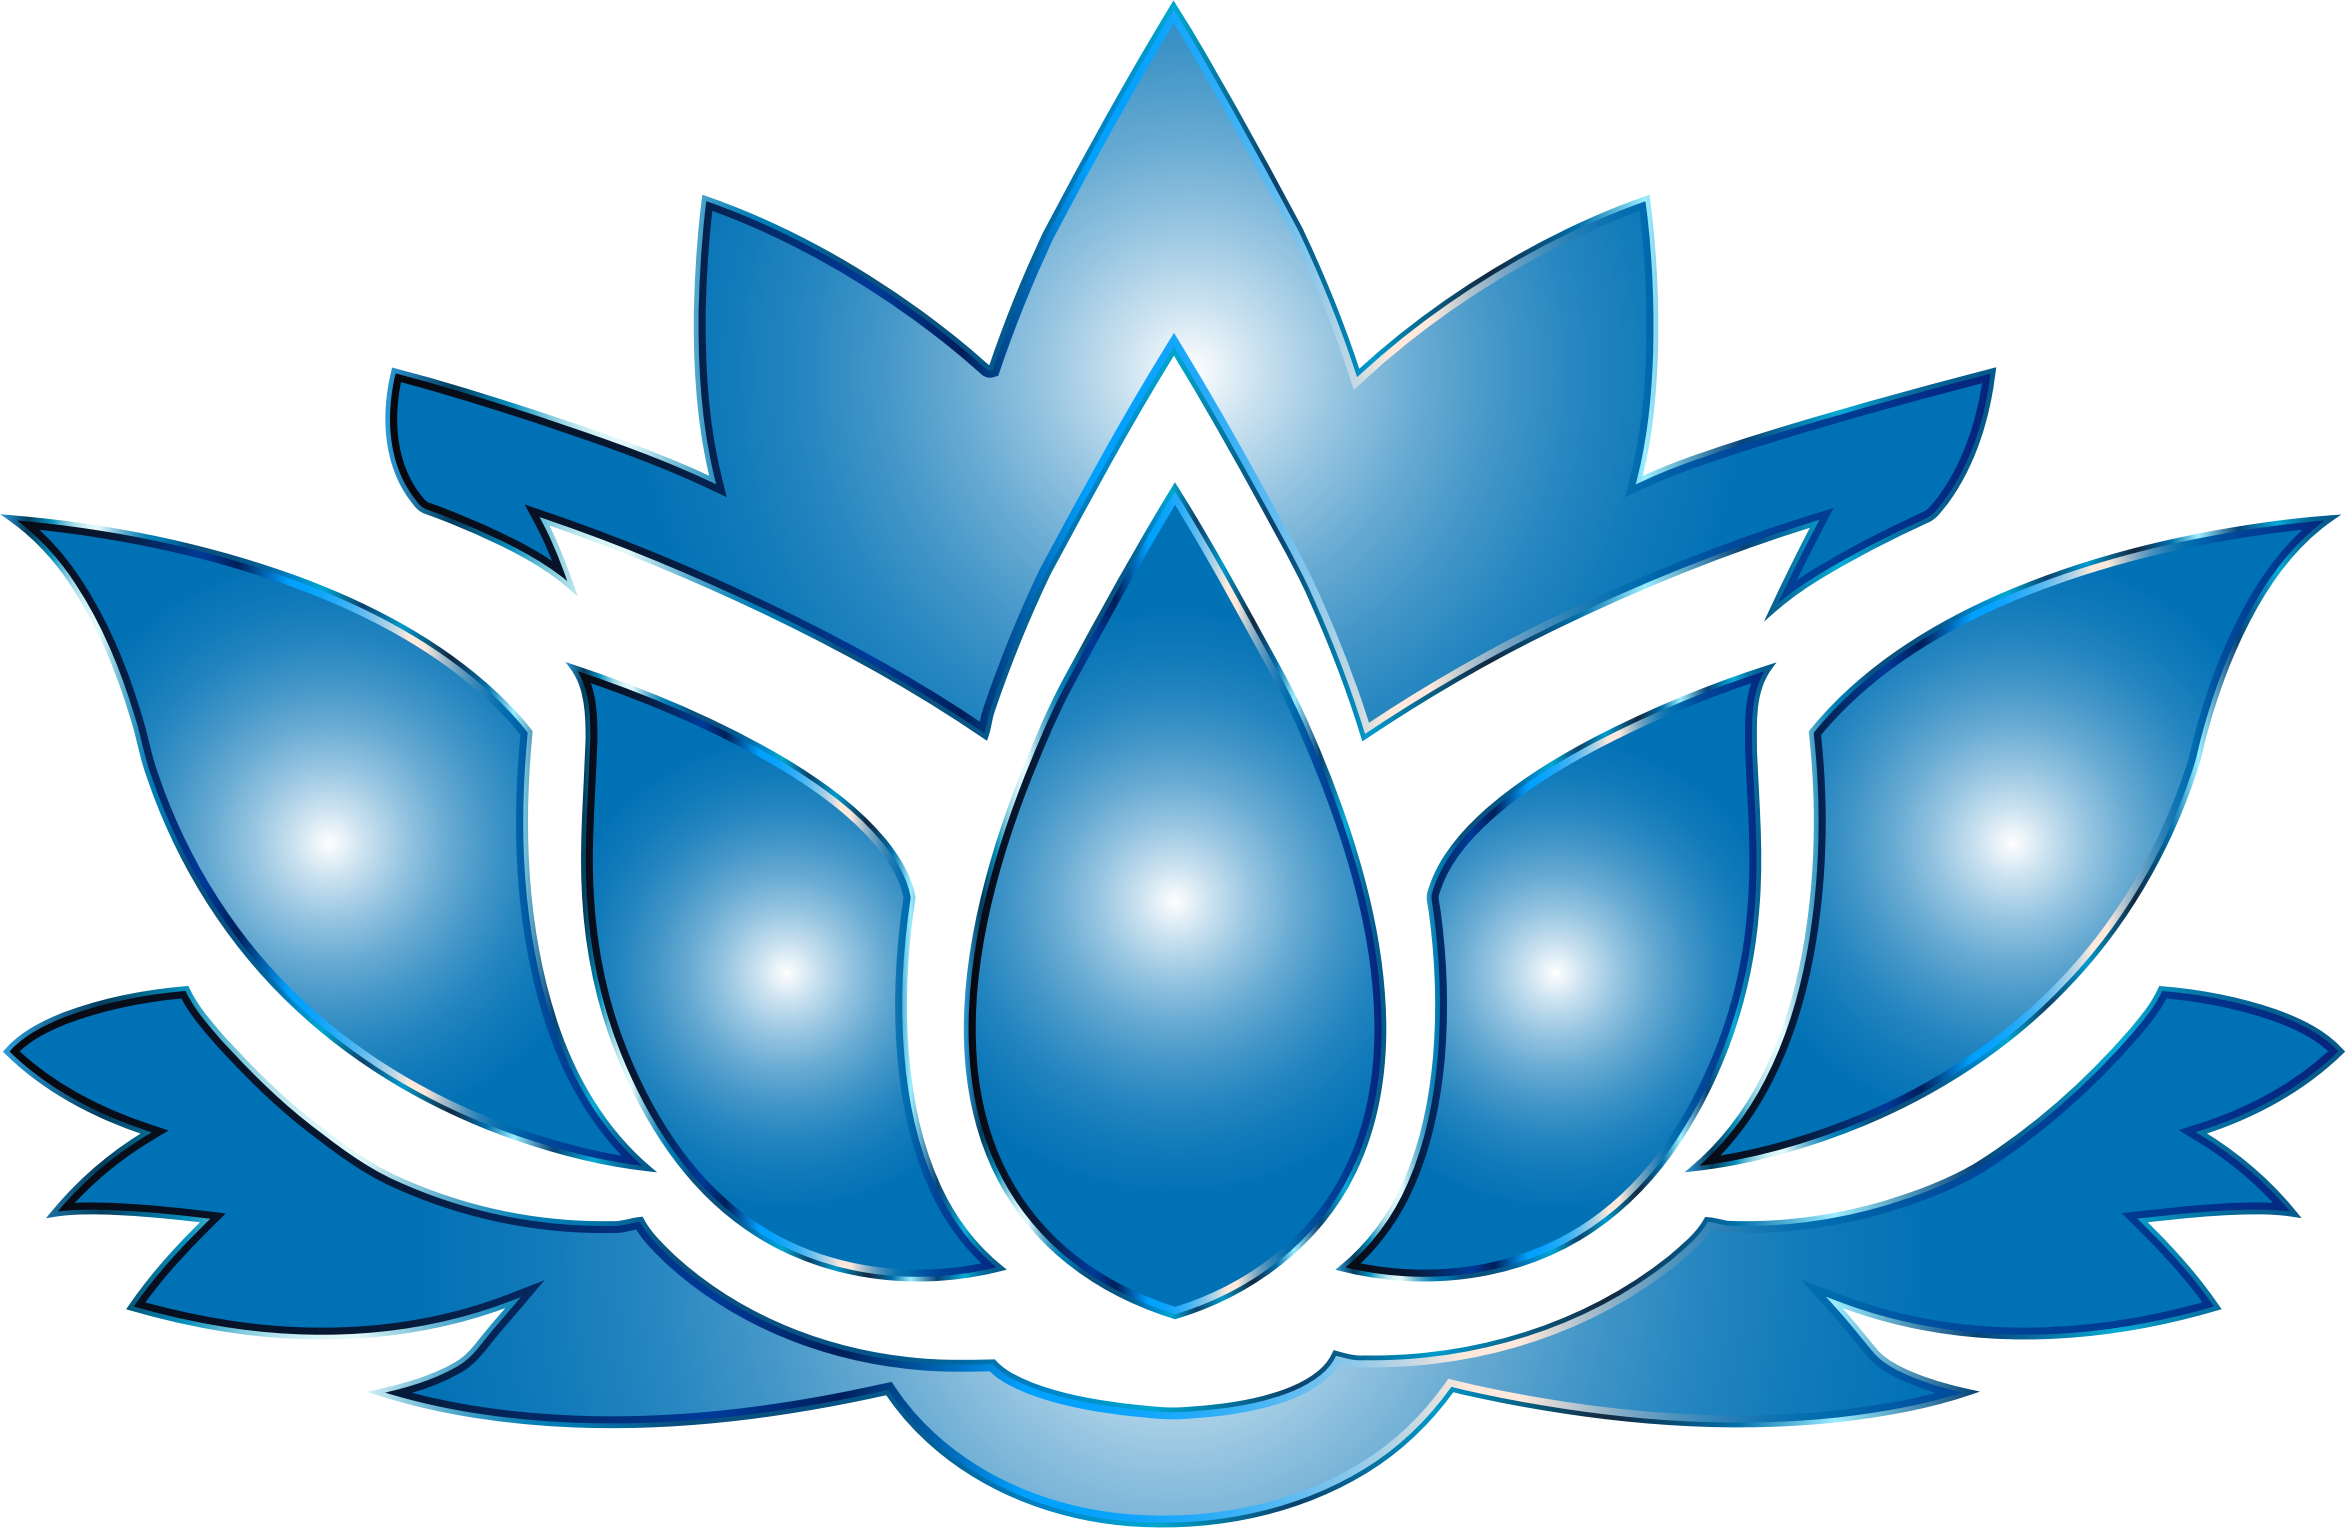 Ultramarine Lotus Flower Silhouette No Background by GDJ